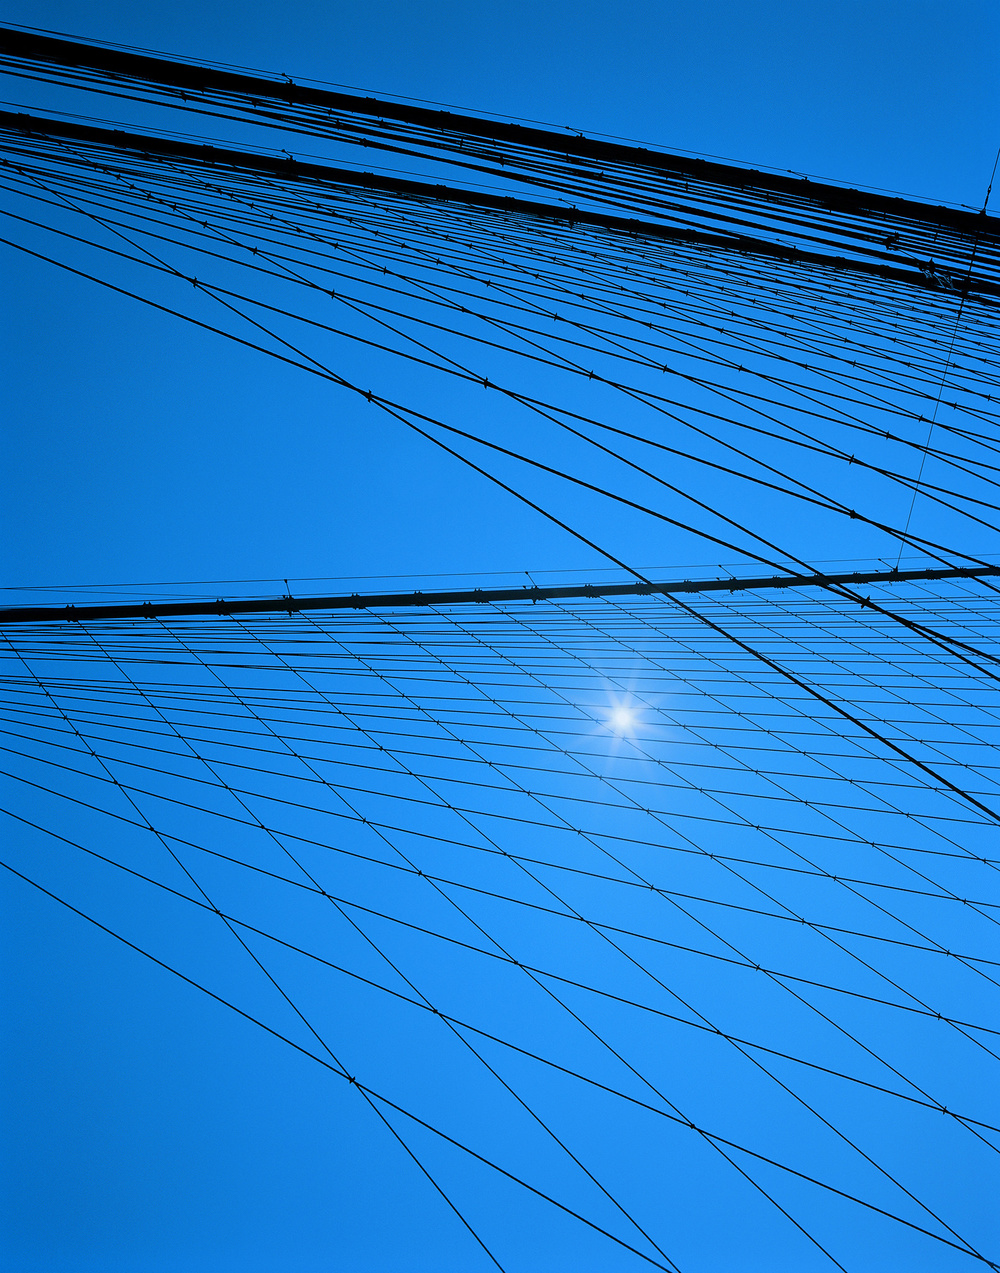 001BrooklynBridge.jpg